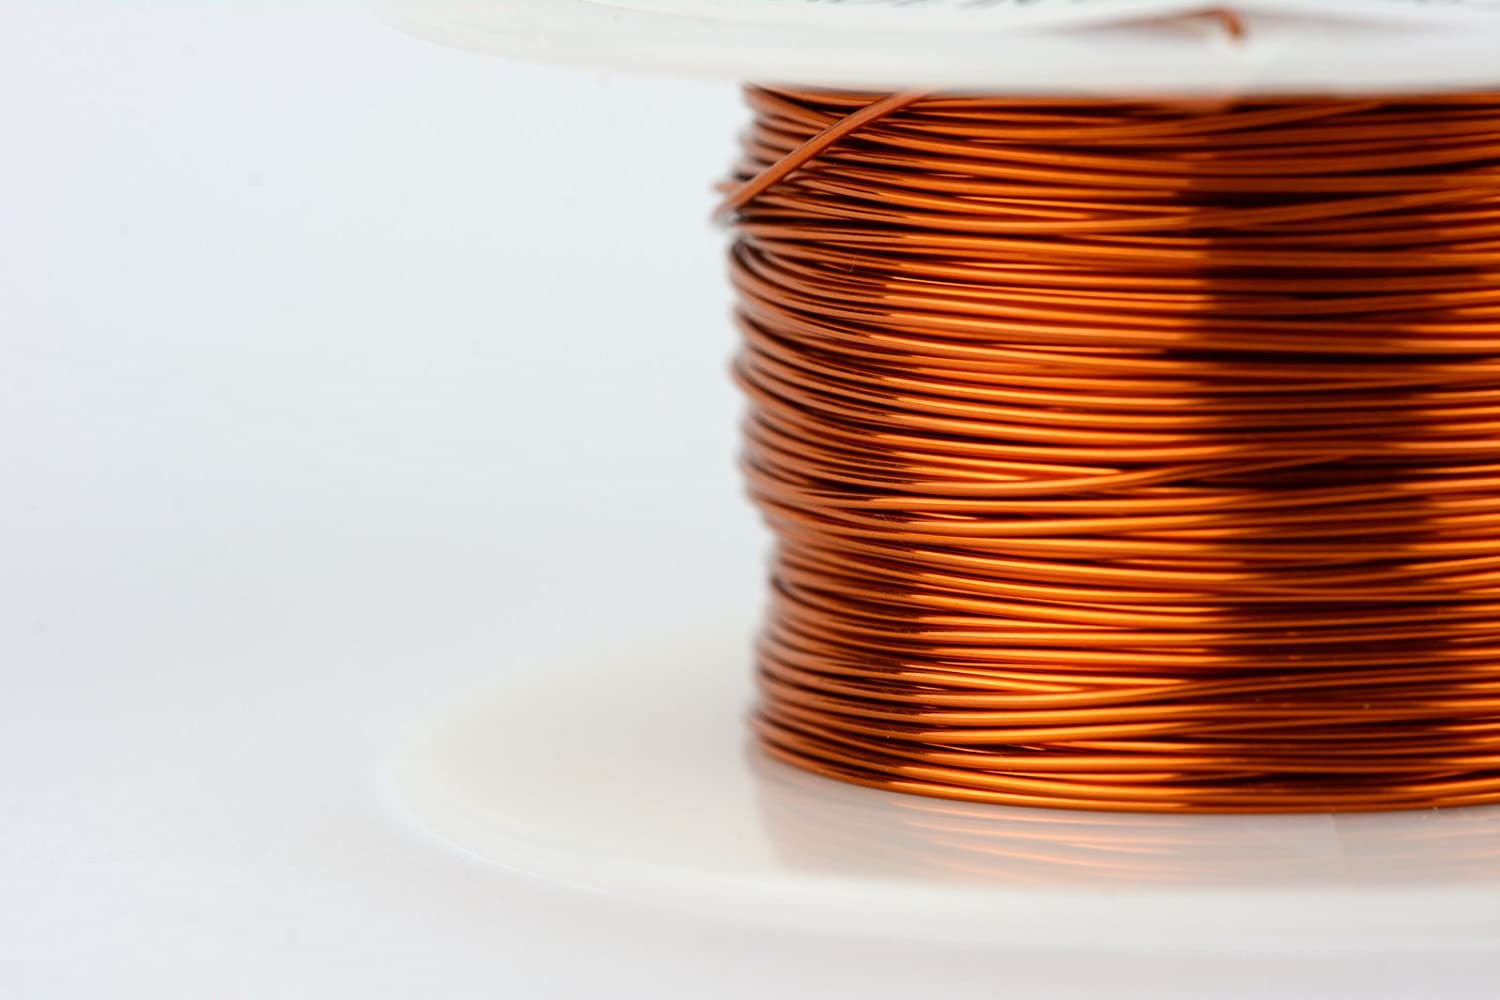 Amazon.com: TEMCo 8 AWG Copper Magnet Wire - 7.5 lb 150 ft 200°C ...